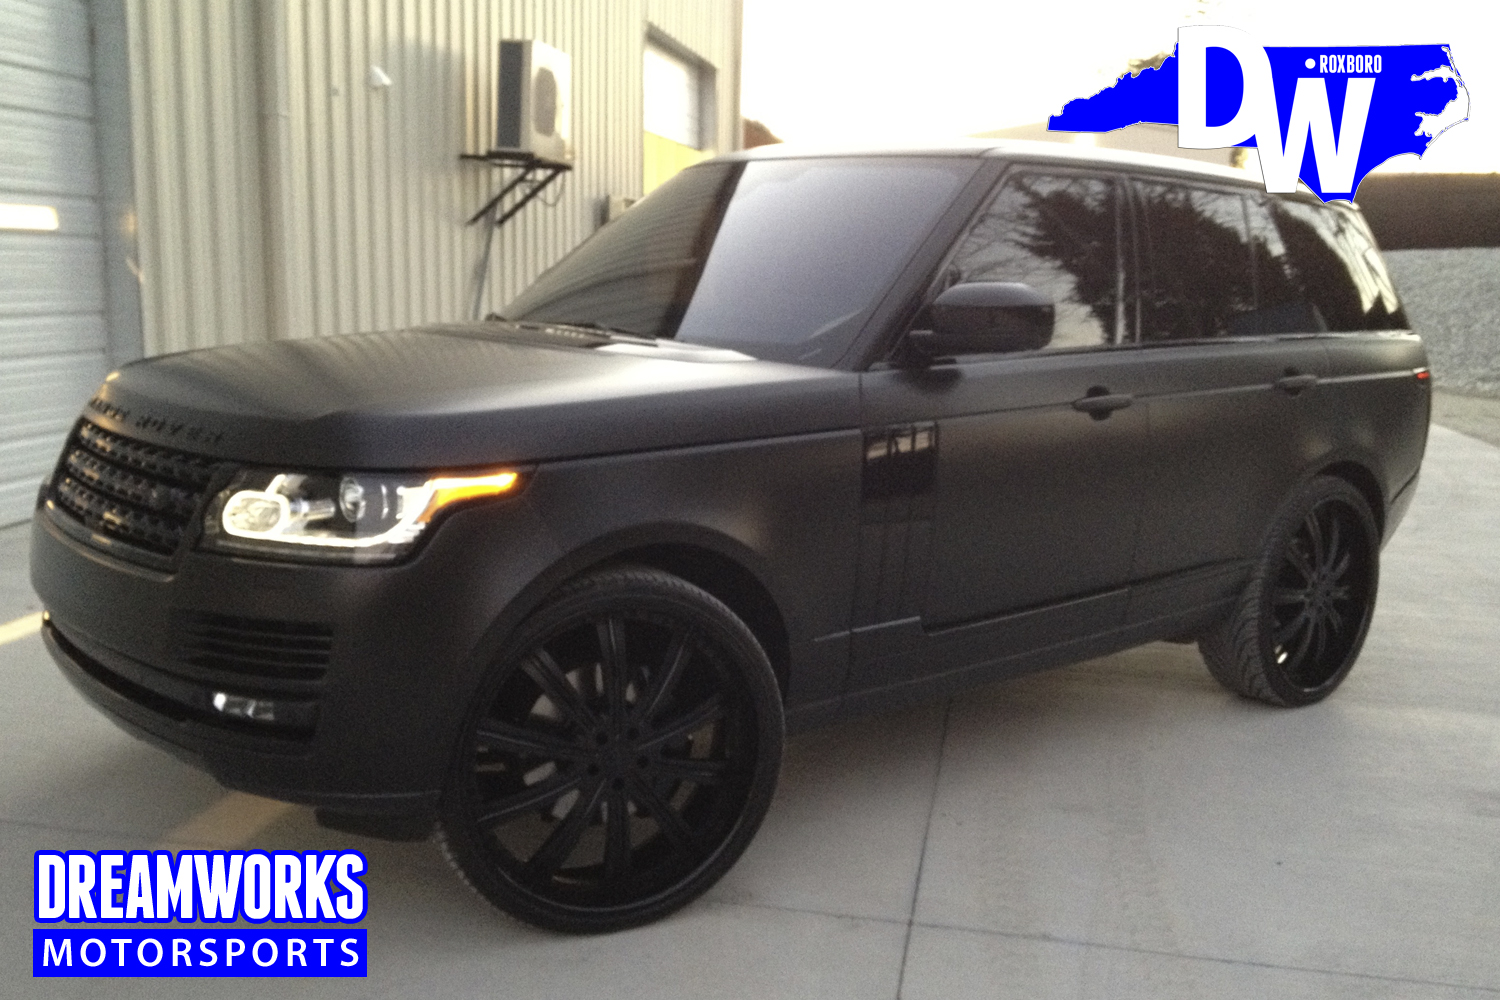 Wesley-Mathews-Range-Rover-Matte-Wrapped-By-Dreamworks-Motorsports-17.jpg